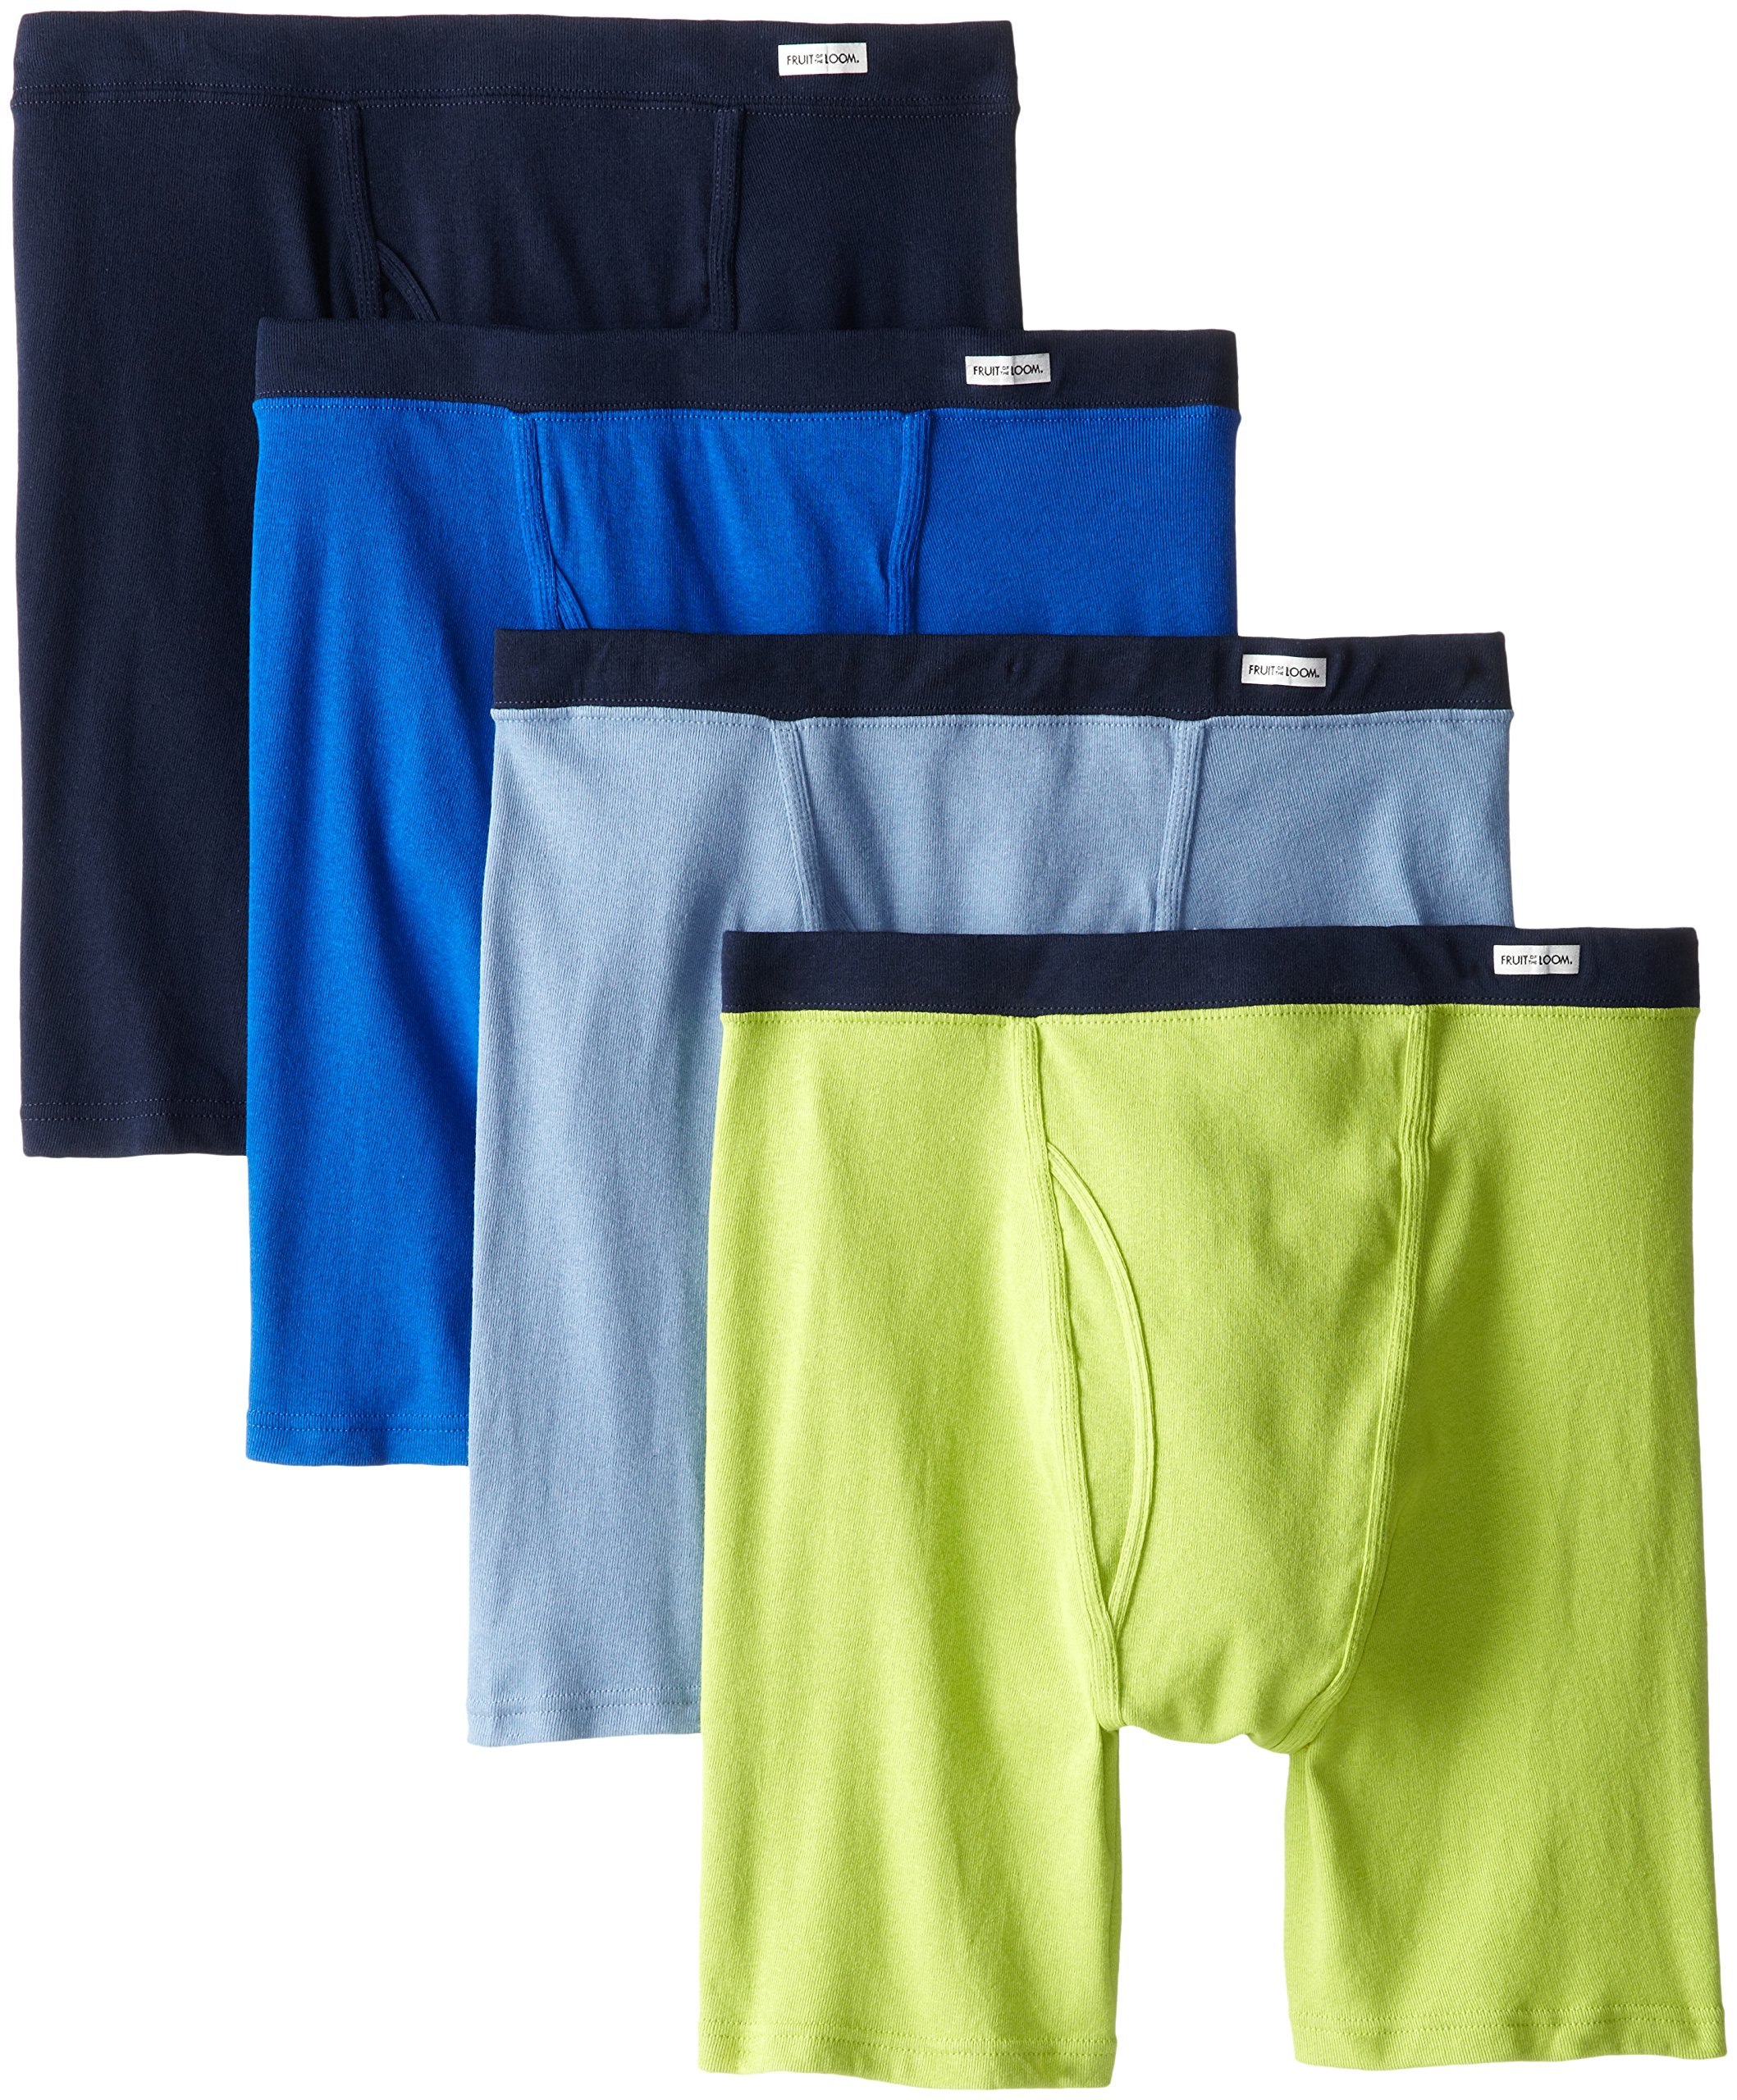 Fruit of the Loom Men's Covered Waistband  X-Size Boxer Brief, Assorted, 3X-Large(Pack of 4) by Fruit of the Loom